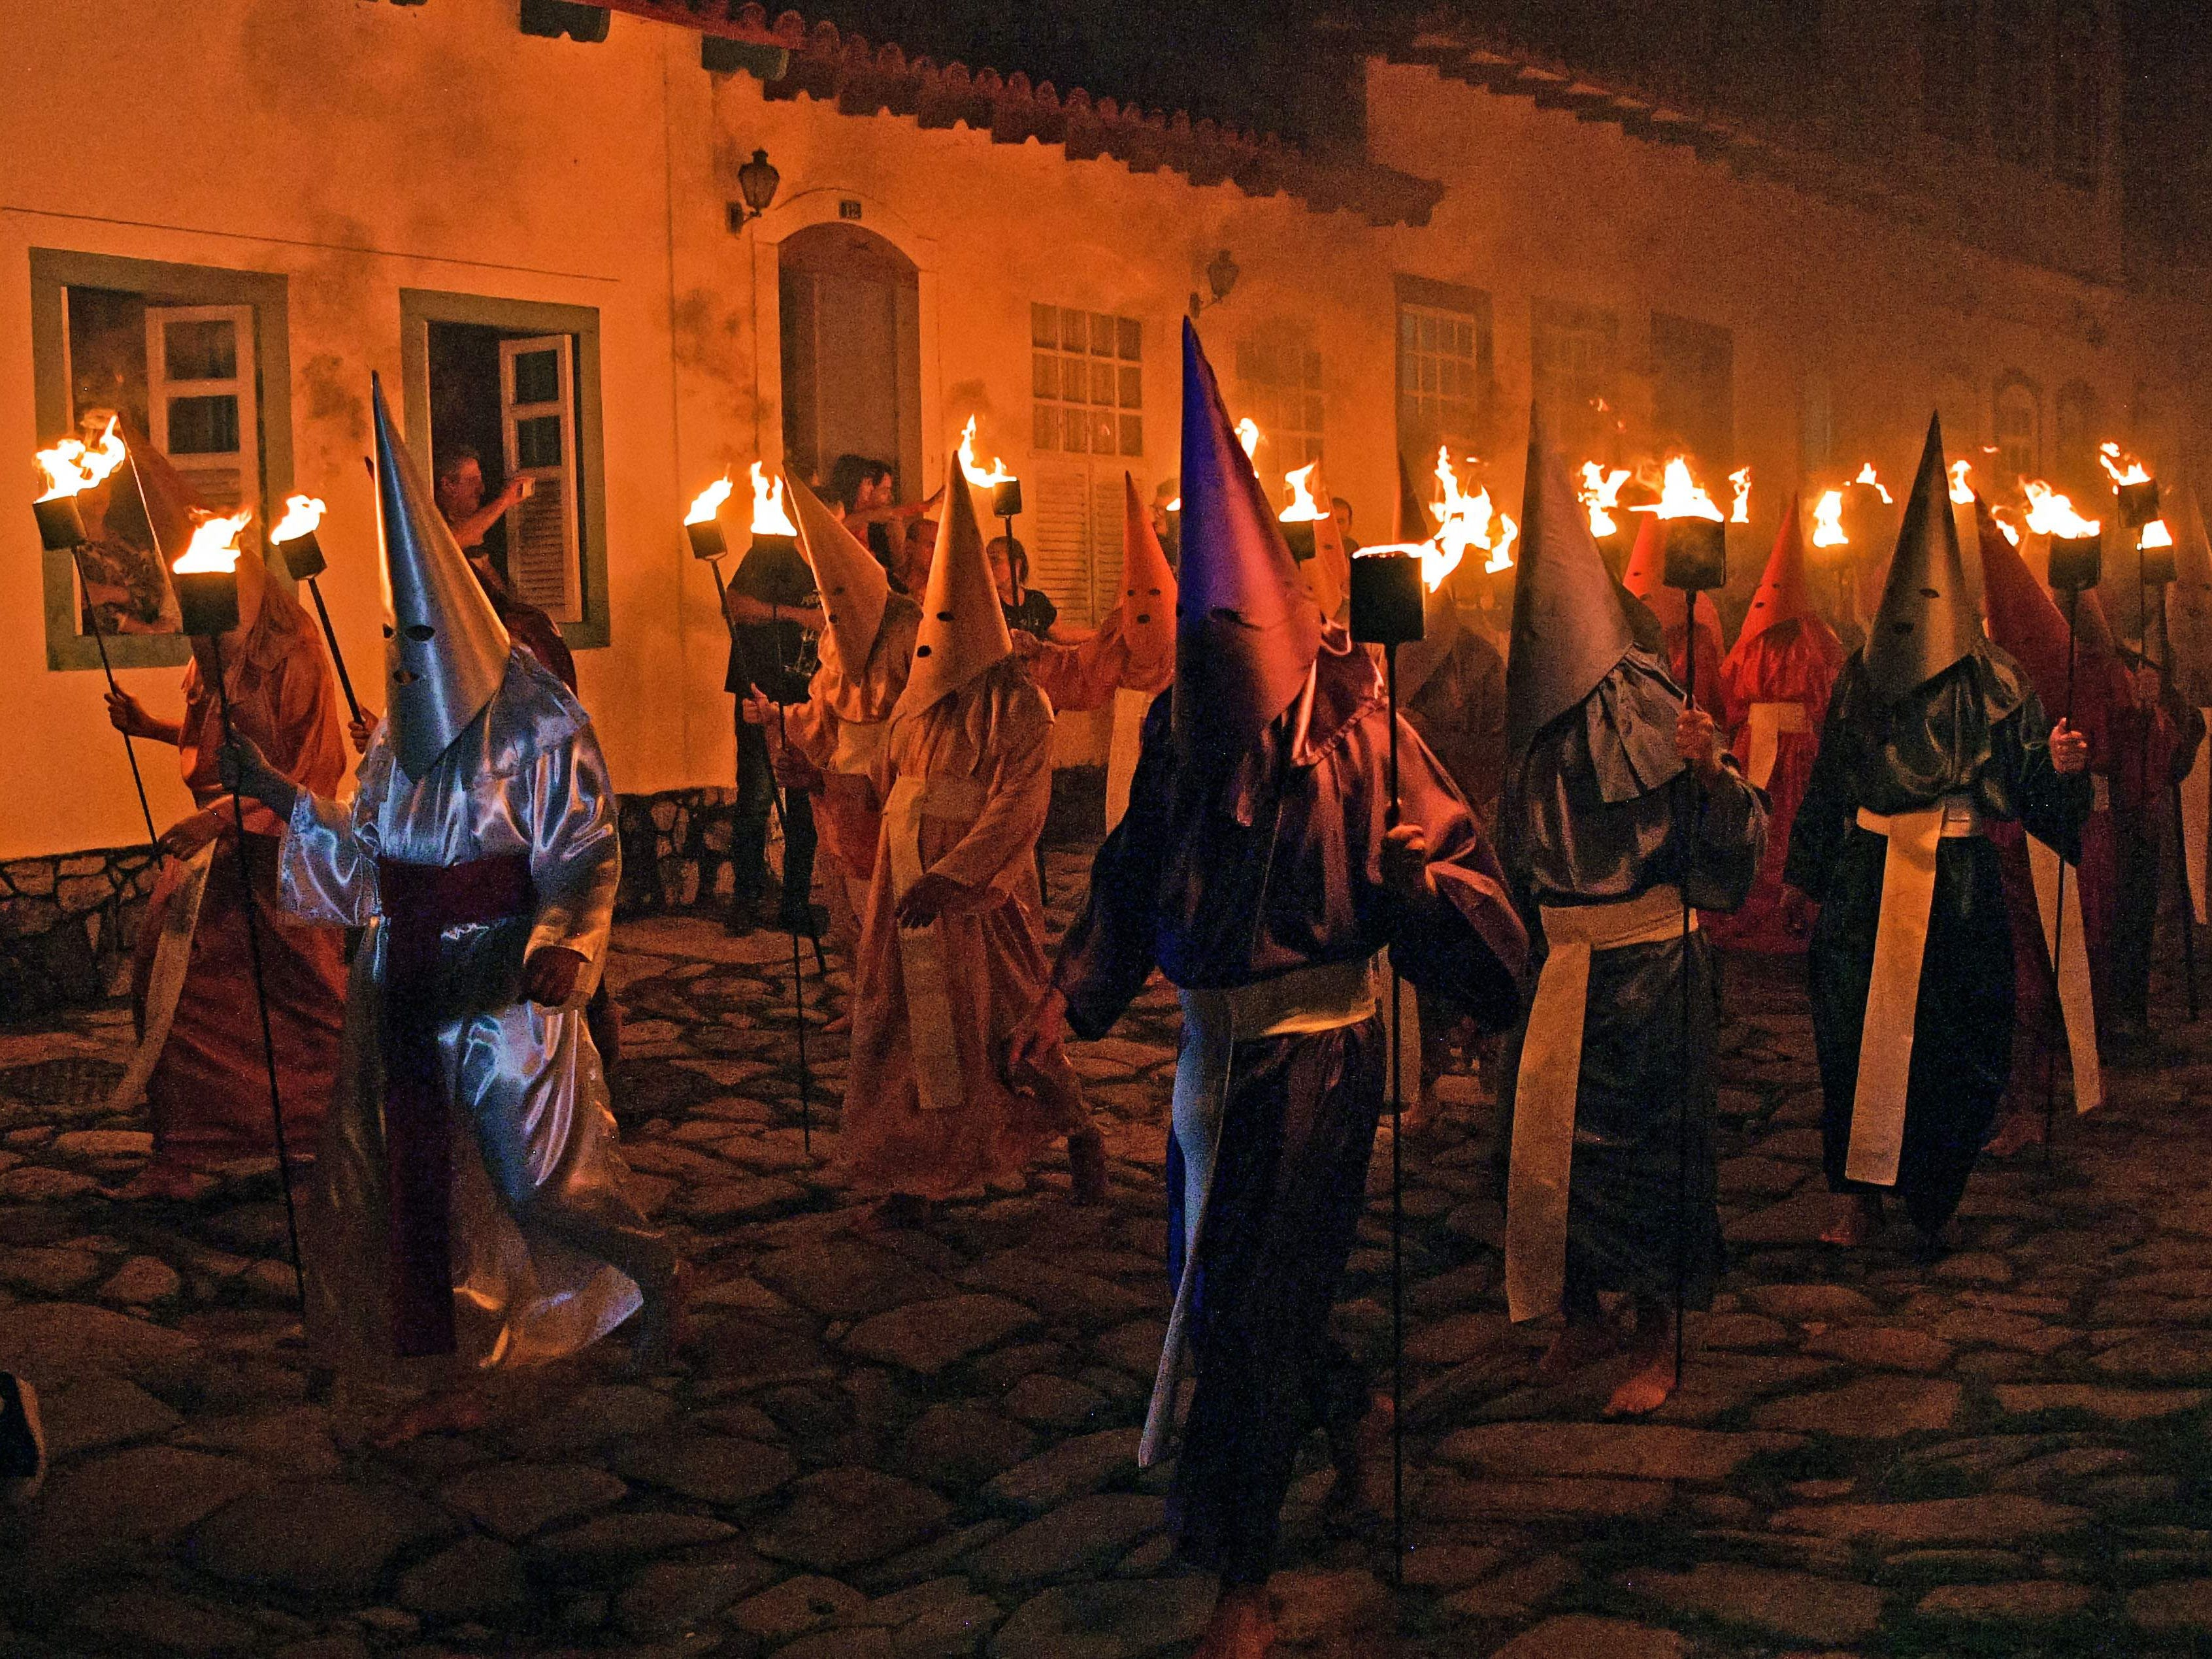 """Hooded catholic faithful representing Roman soldiers, known as """"Farricocos"""", carry flaming torches during the annual Fogareu Holy Week procession in Goias, 350 km west of Brasilia, Brazil, on April 17, 2019. The Christian religious ceremony is a re-enactment of the arrest of Jesus Christ. The costumes are of medieval origin, and were used by penitents so they could atone for their sins without having to reveal their identity in public."""